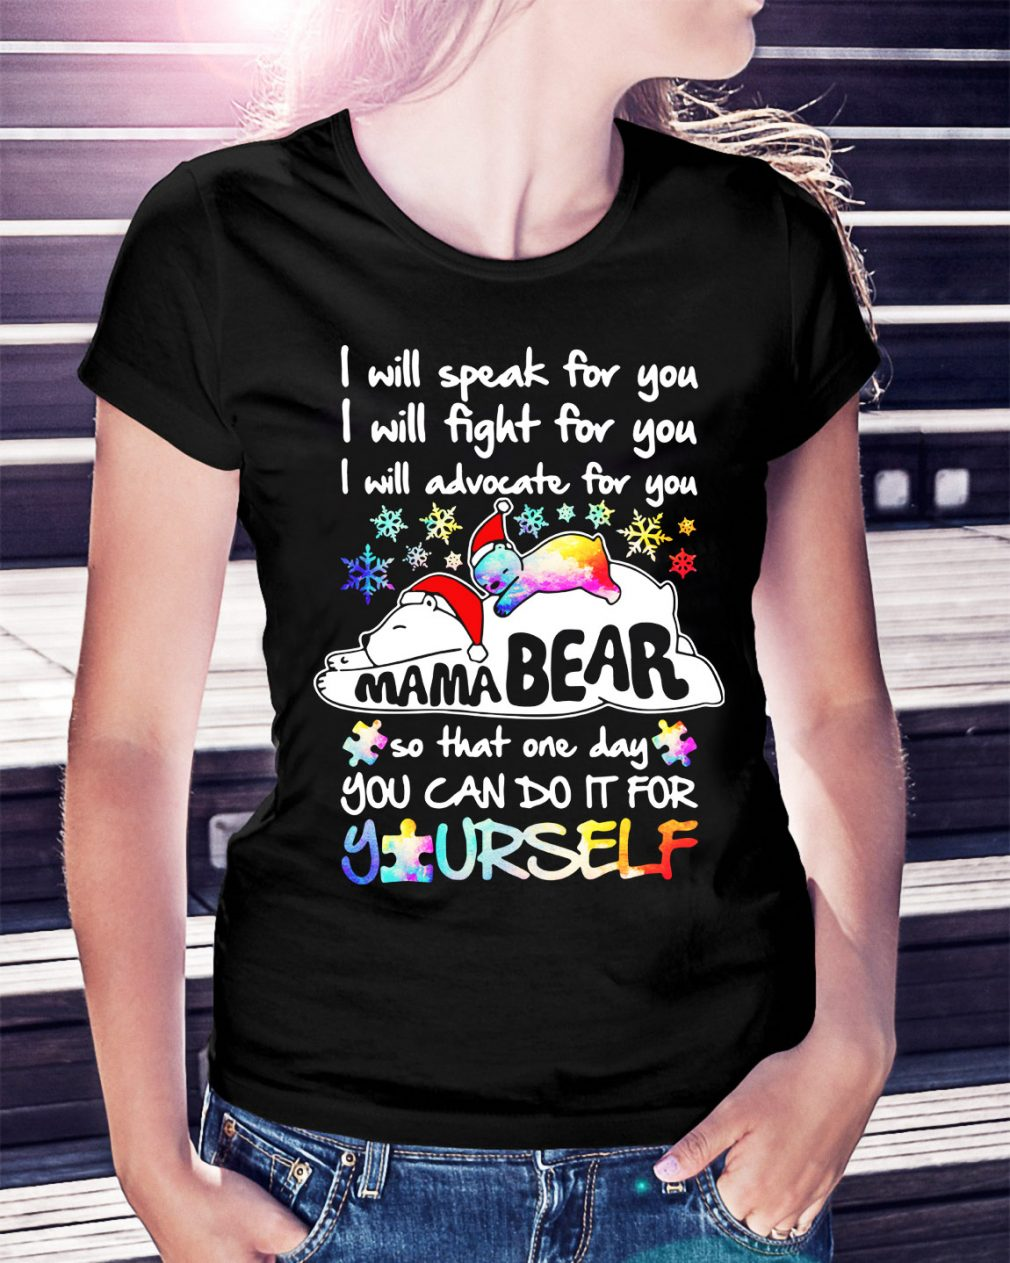 Mama bear I will speak for you so you can do it for yourself Ladies Tee